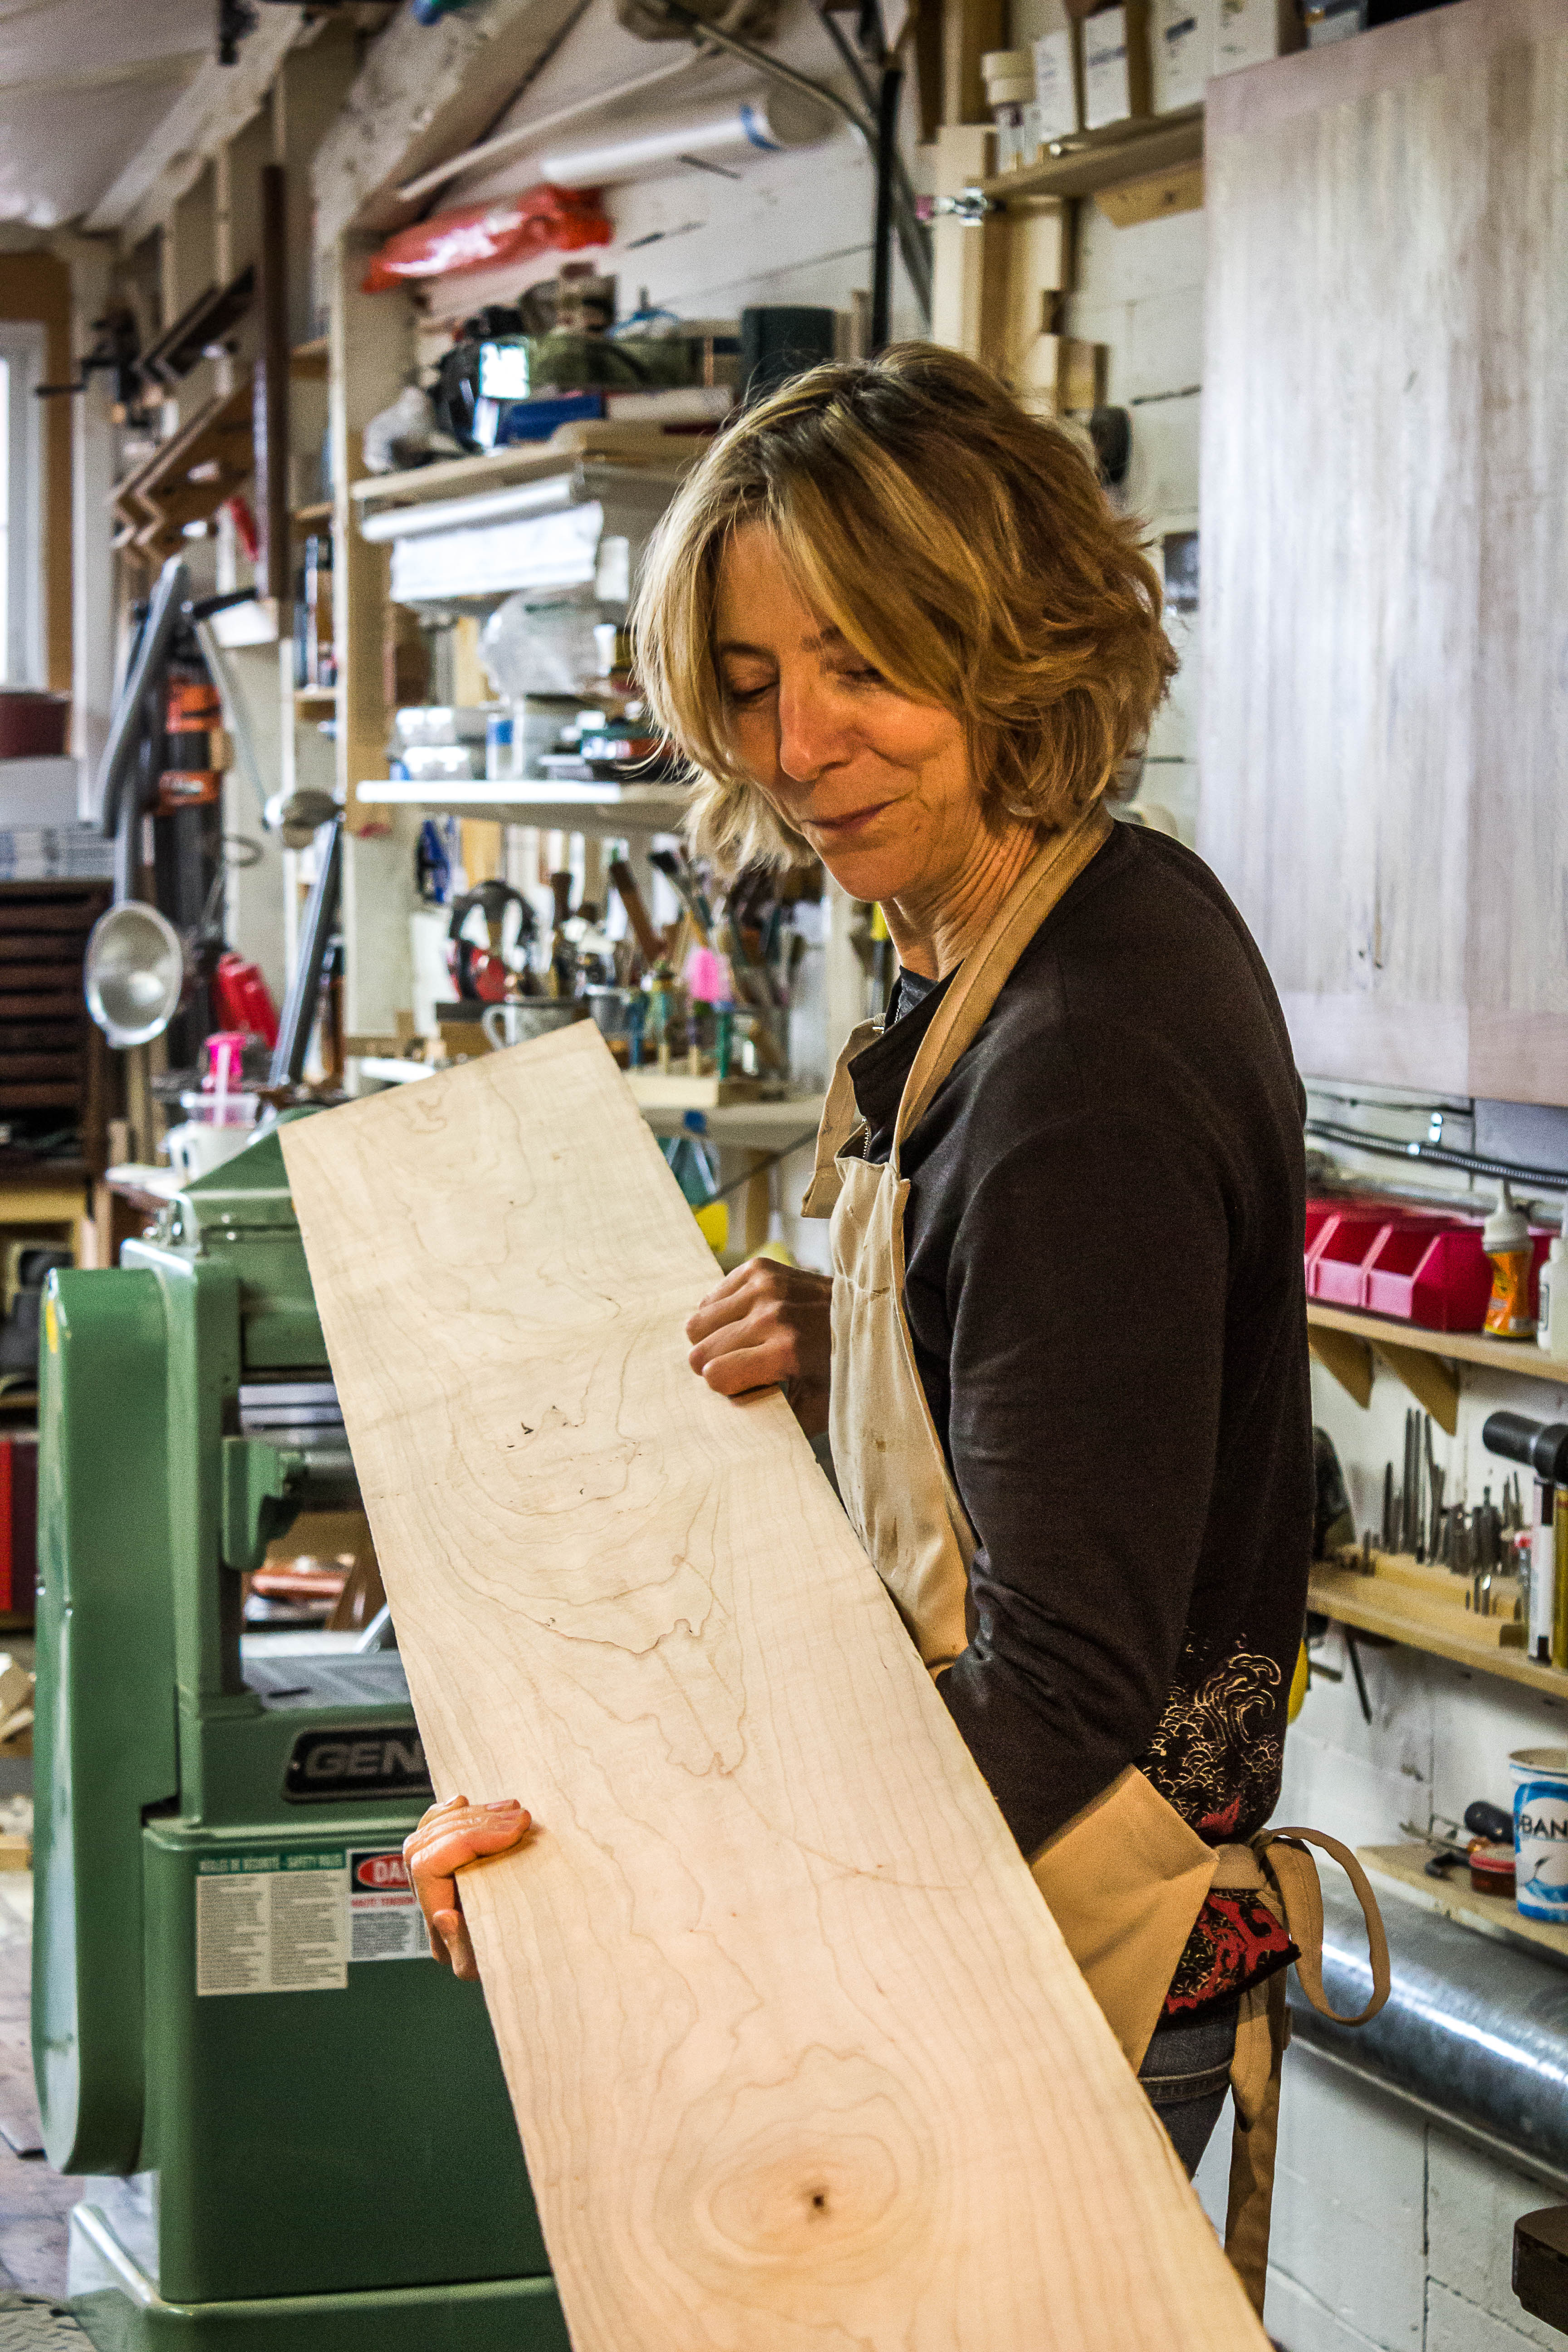 Works With Her Hands One Fine Furniture Maker Bucking The